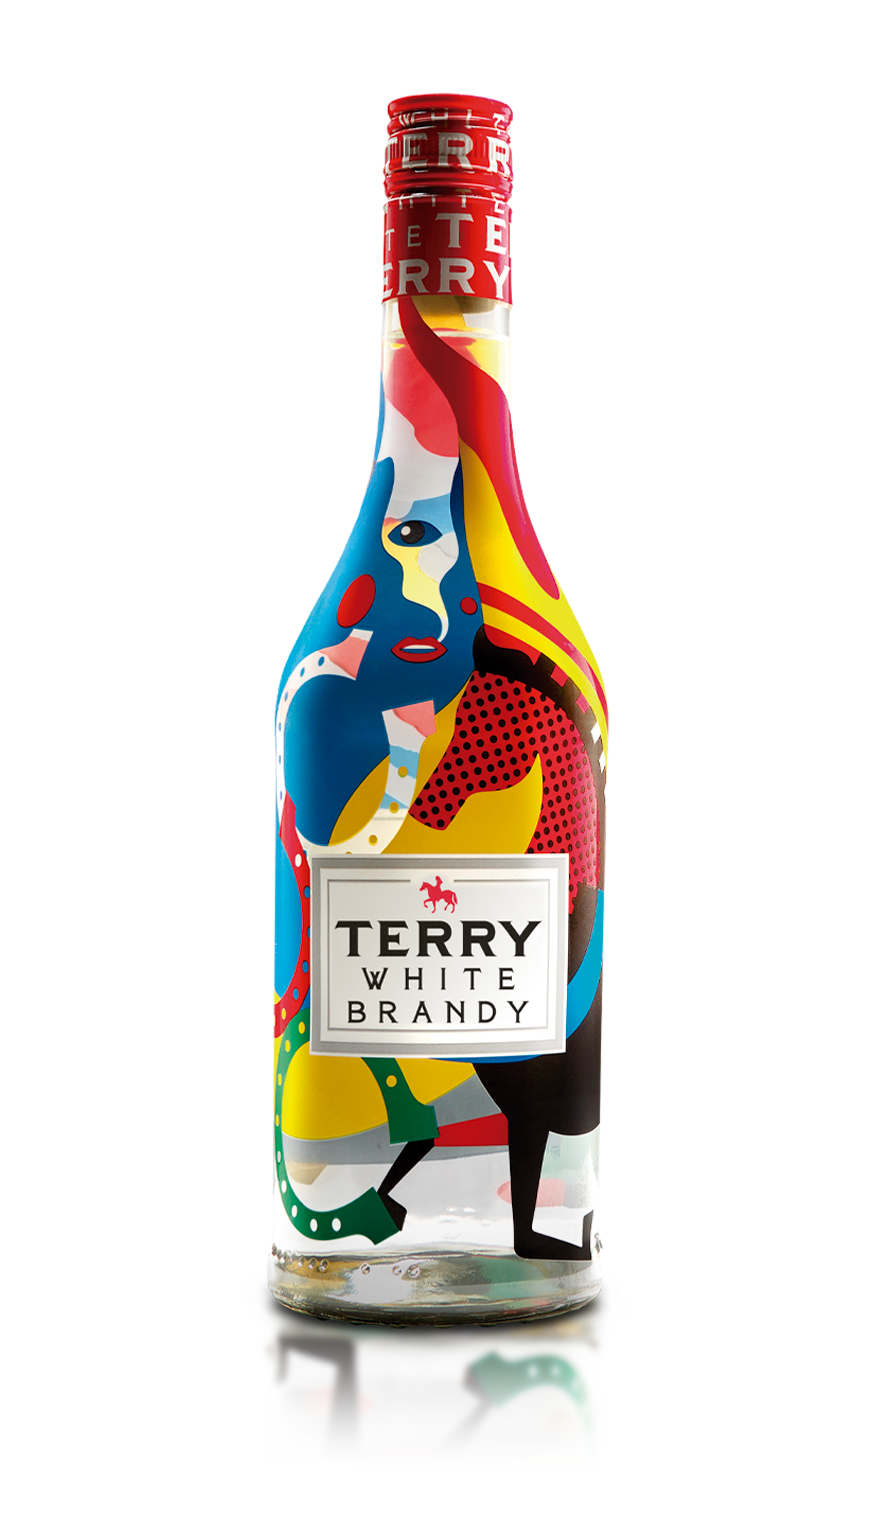 Botella Terry White Brandy